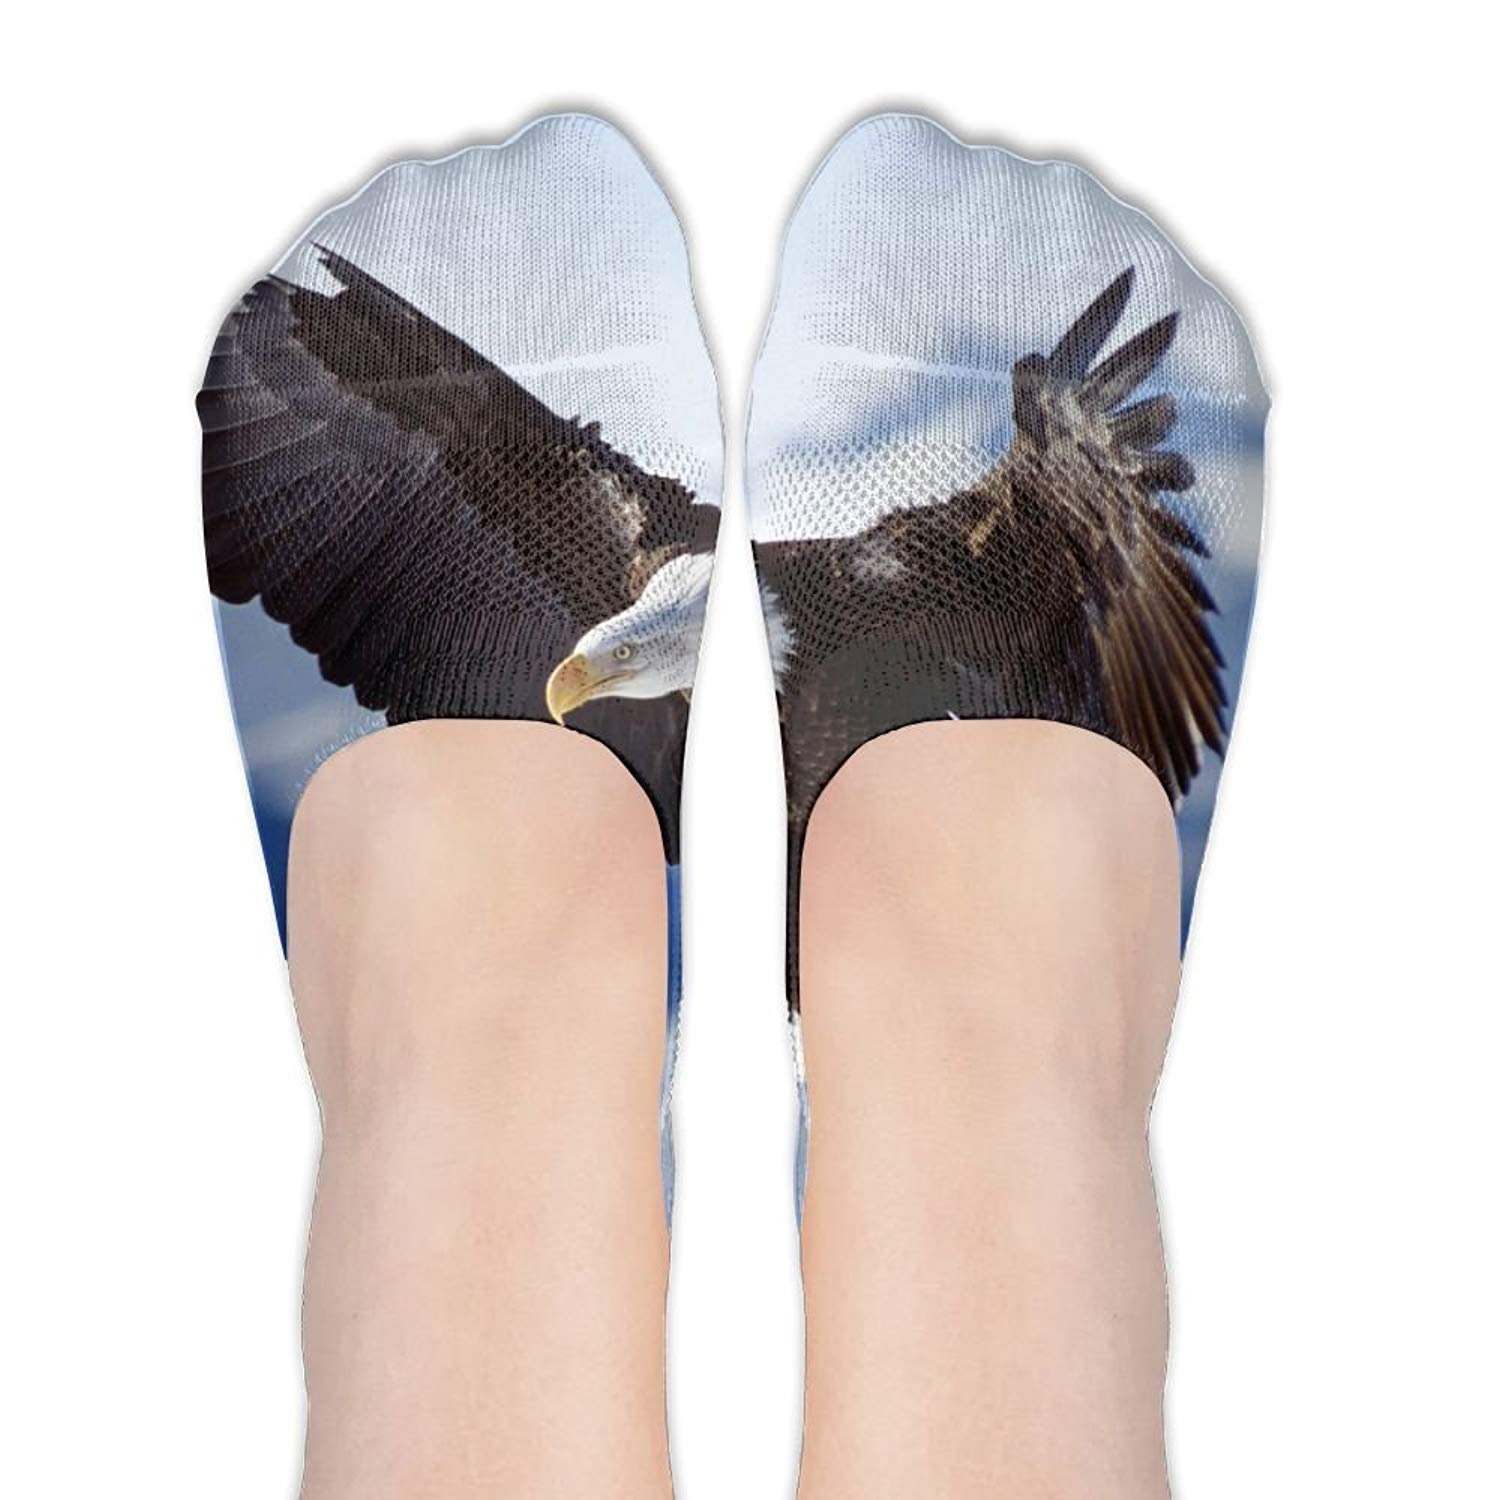 Bald Eagle Funny Pattern DIY Printed Pattern Soft Low Cut Socks No-show Liner Invisible Polyester Cotton Sock For Female (One Pair)